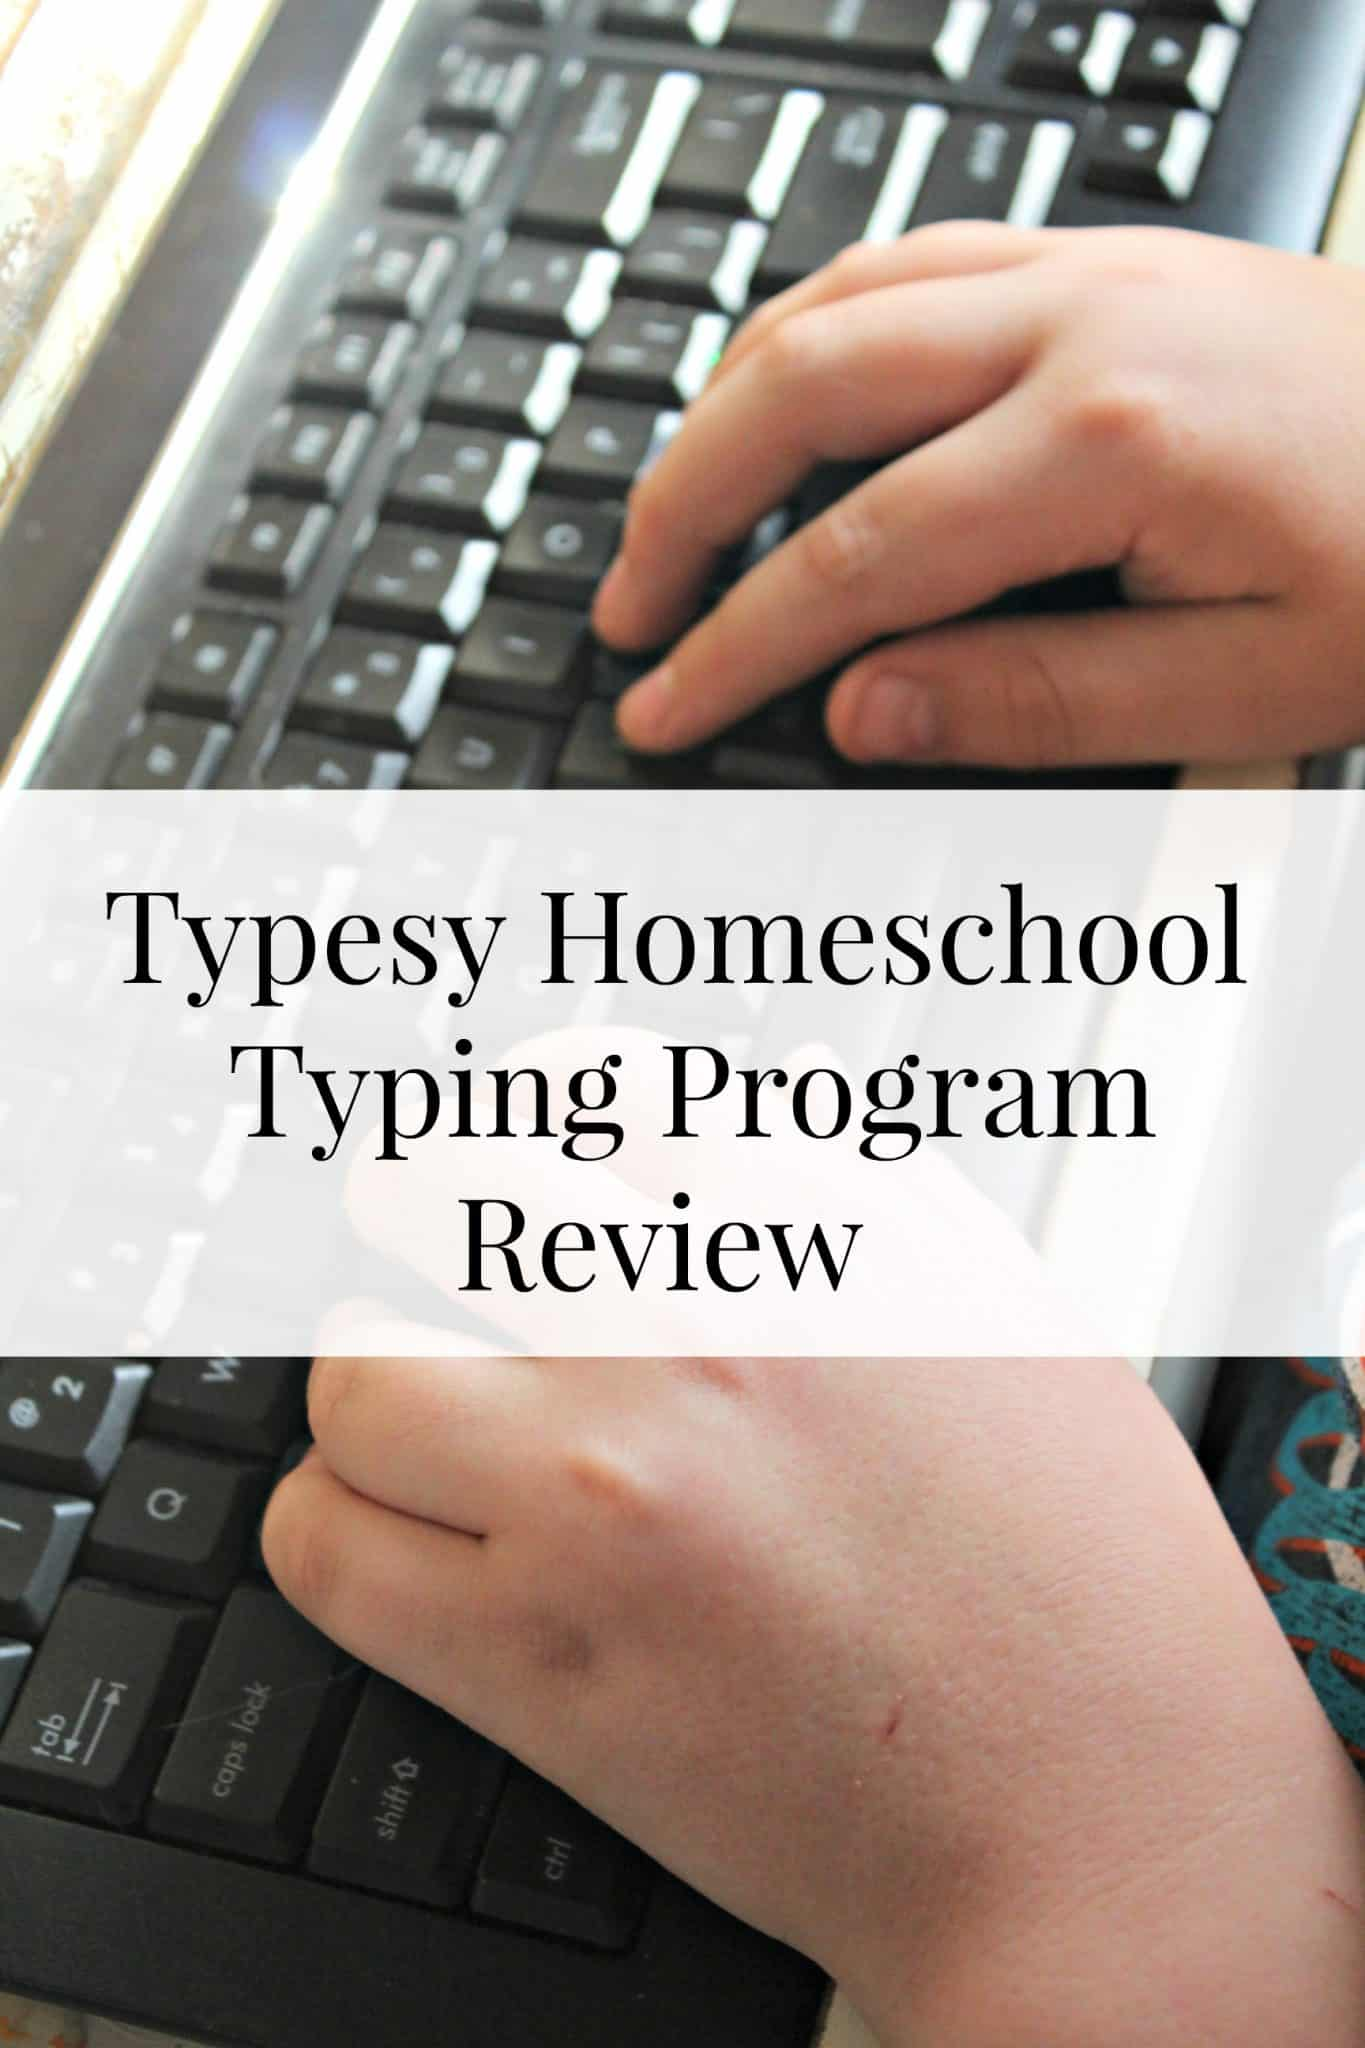 Typesy homeschool typing program is a great option for homeschool families who are looking to teach touch typing in their homeschool. In this post, I will show you how the program works, what you can get when you purchase it, and a sneak peek at the games.